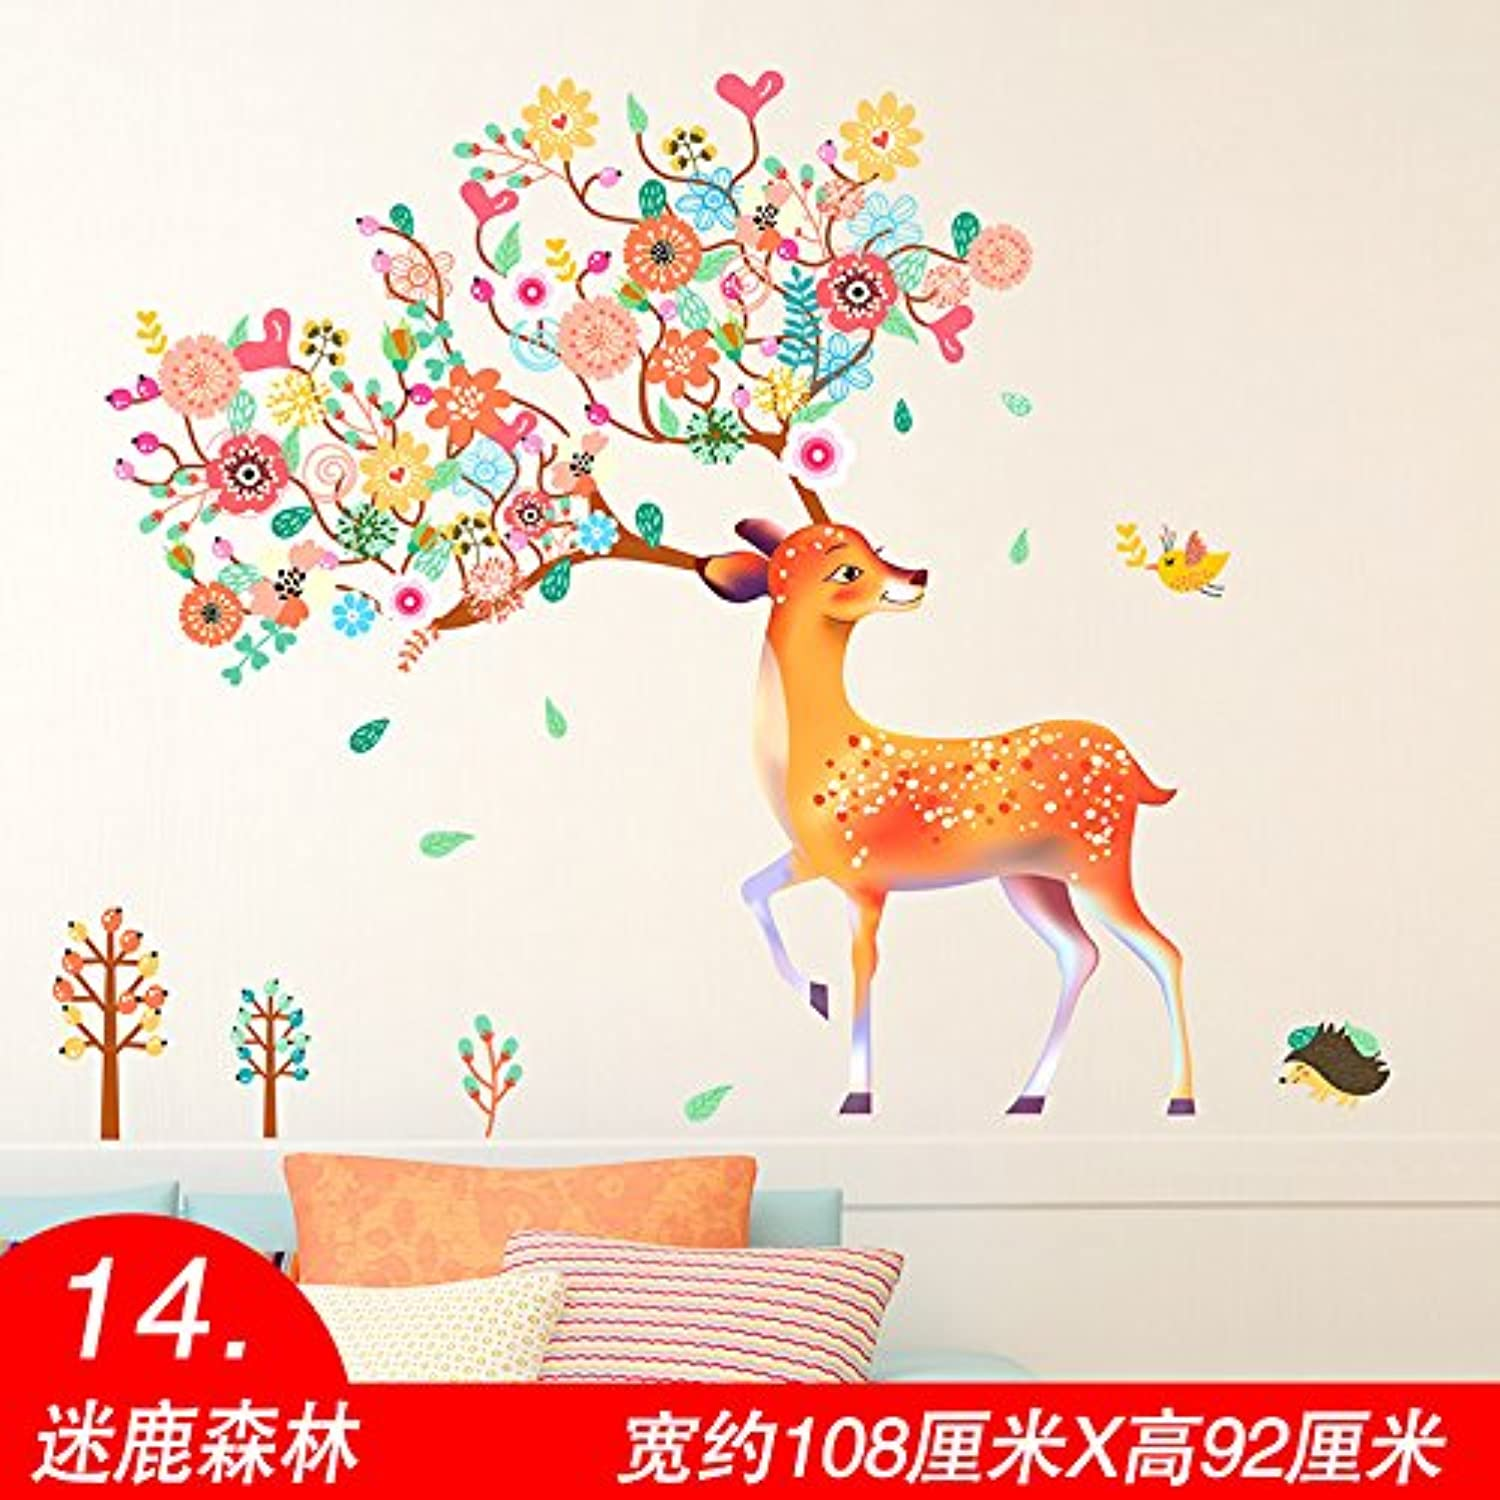 Znzbzt Bedroom Wall Sticker Art Decor Personalized Wall Art self Adhesive Wallpaper Wall Mount, Forest